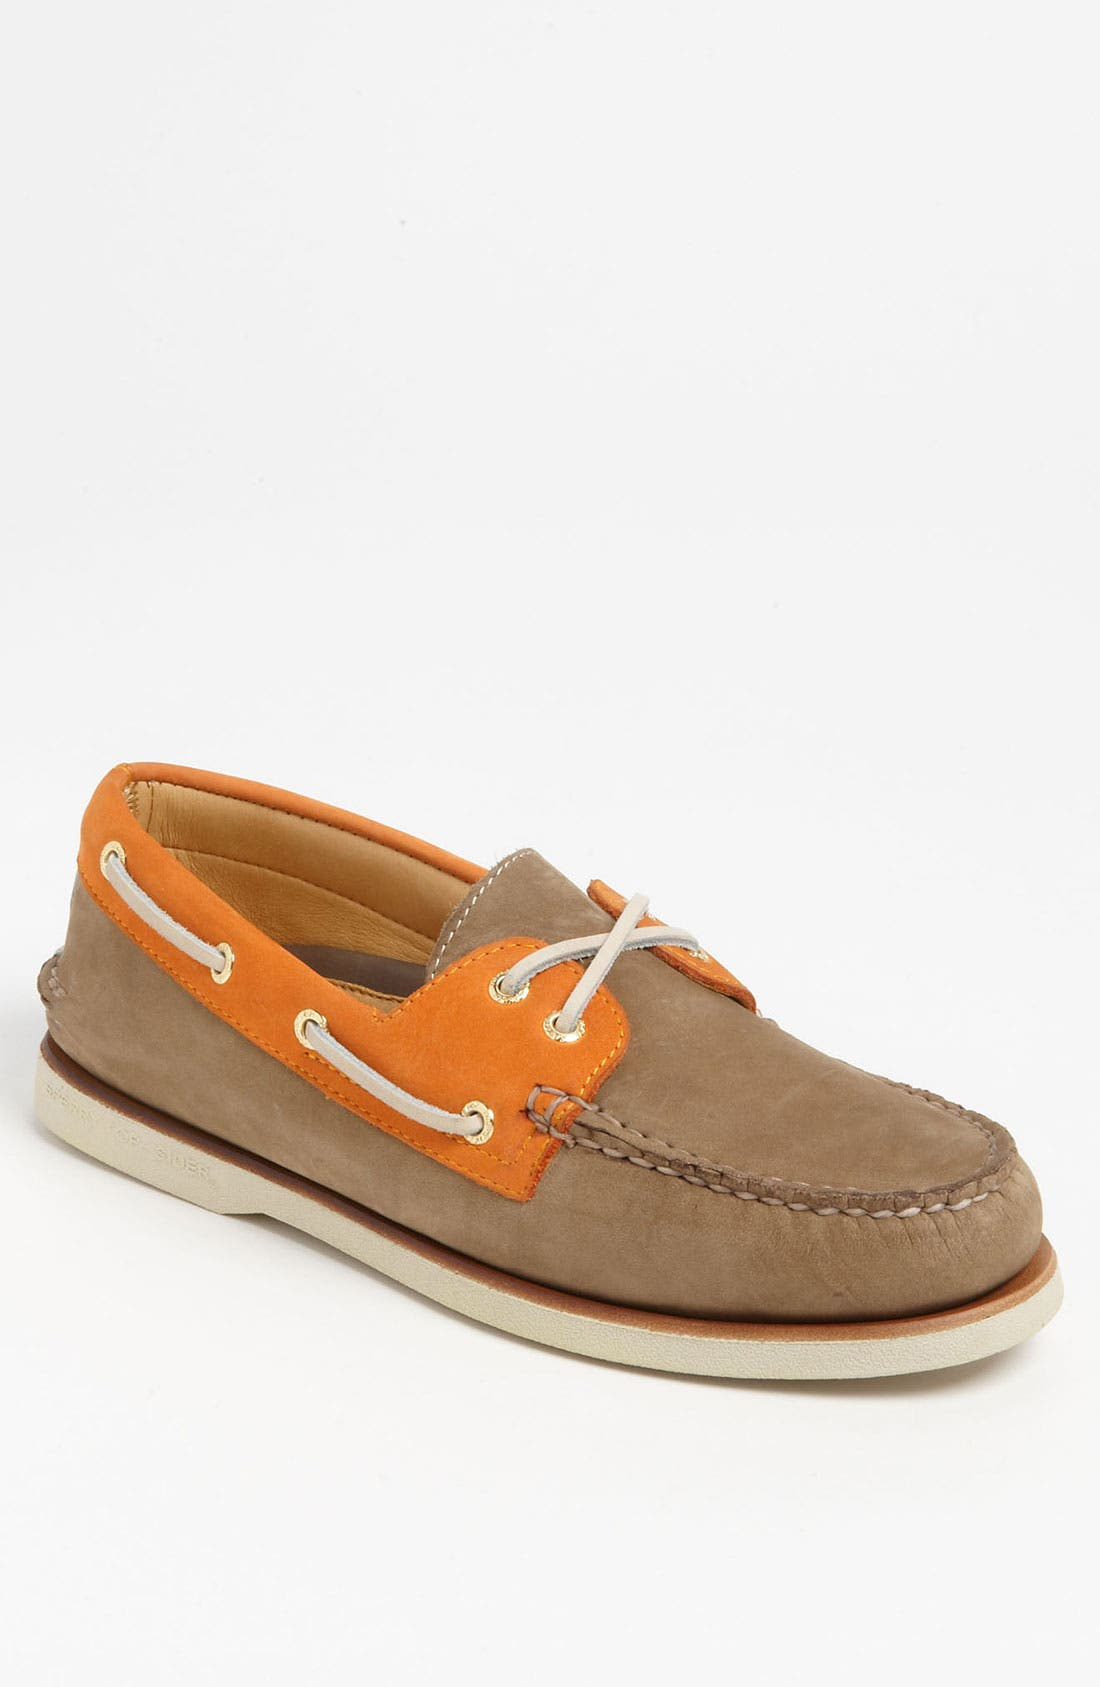 Alternate Image 1 Selected - Sperry Top-Sider® 'Authentic Original - Gold Cup' Boat Shoe